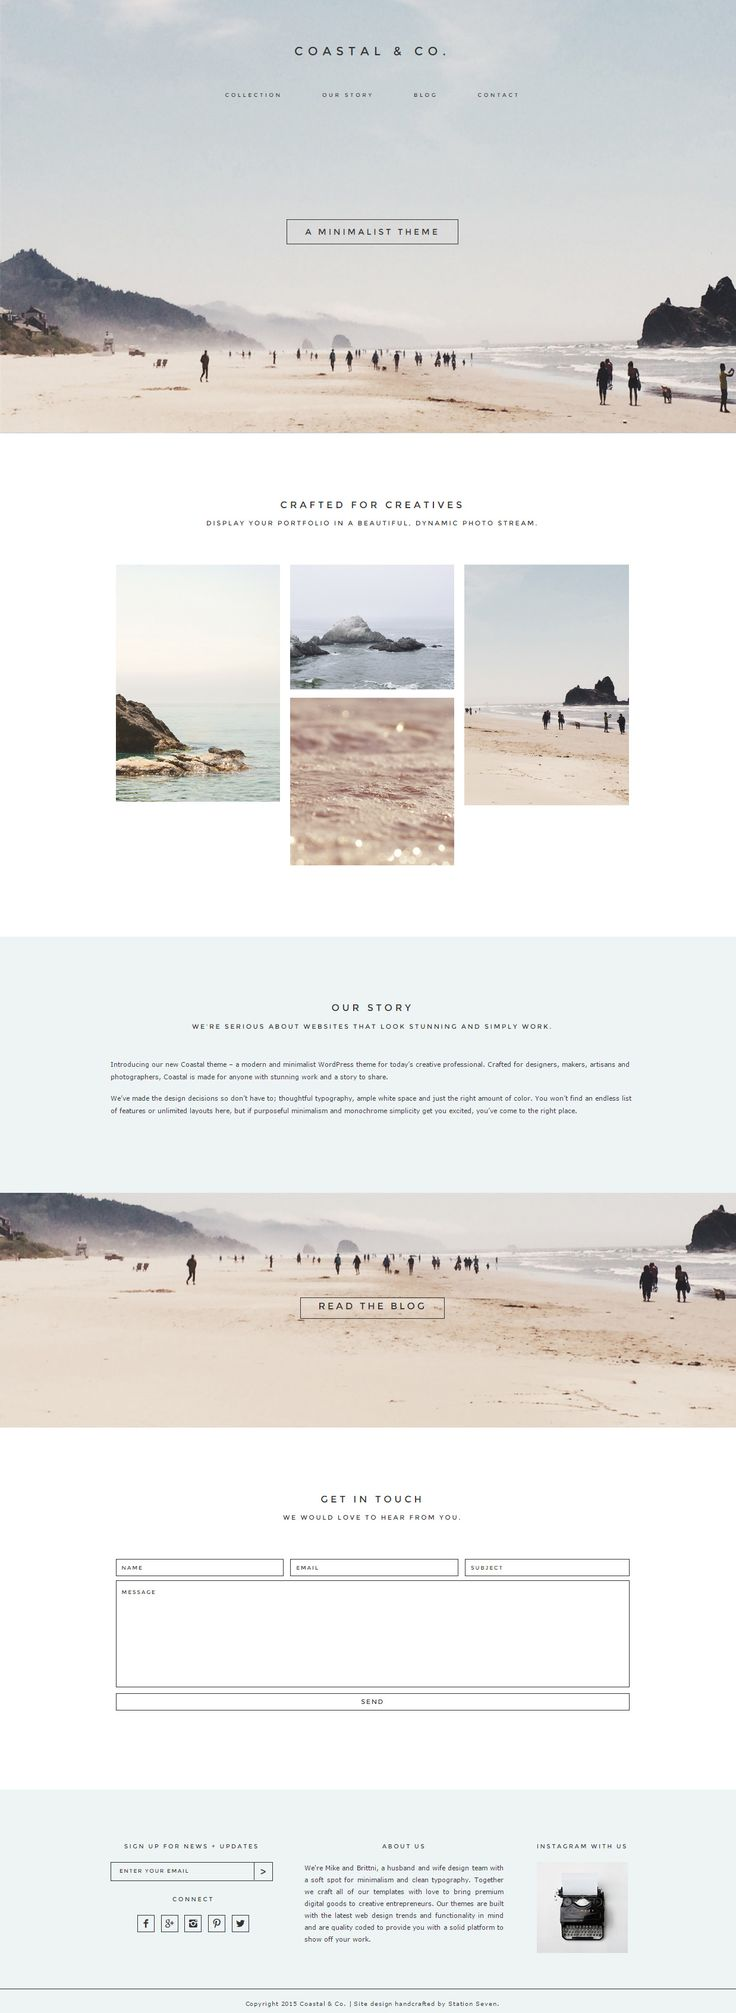 Coastal is Premium full Responsive WordPress Theme for creative professional. Genesis Framework. Dynamic Masonry grid layout. Test free demo at: http://www.responsivemiracle.com/cms/coastal-premium-responsive-wordpress-creative-theme/